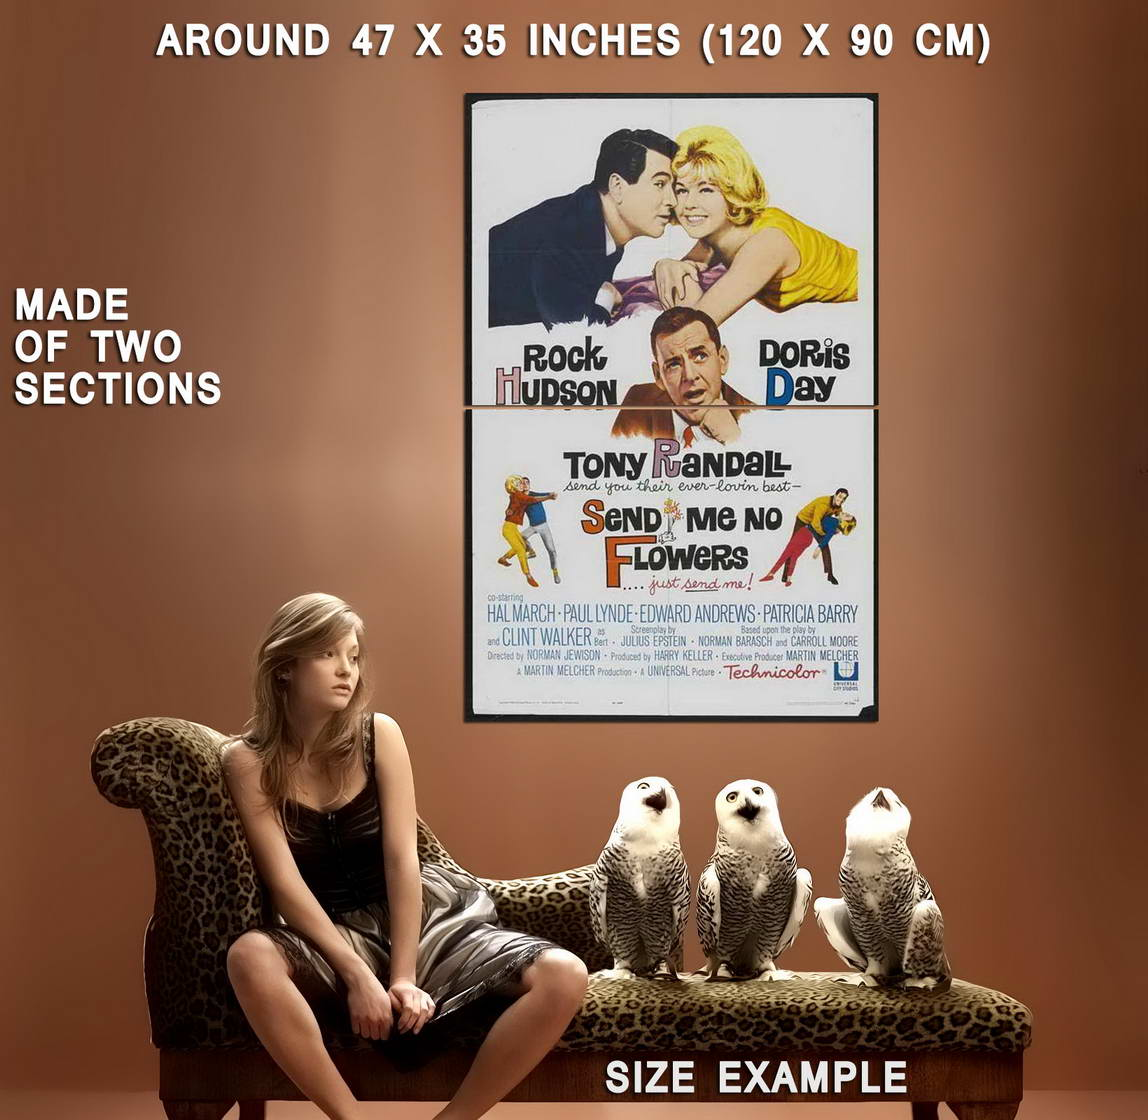 68937-Send-Me-No-Flowers-Movie-Doris-Day-Rock-Hudson-Wall-Print-Poster-Affiche